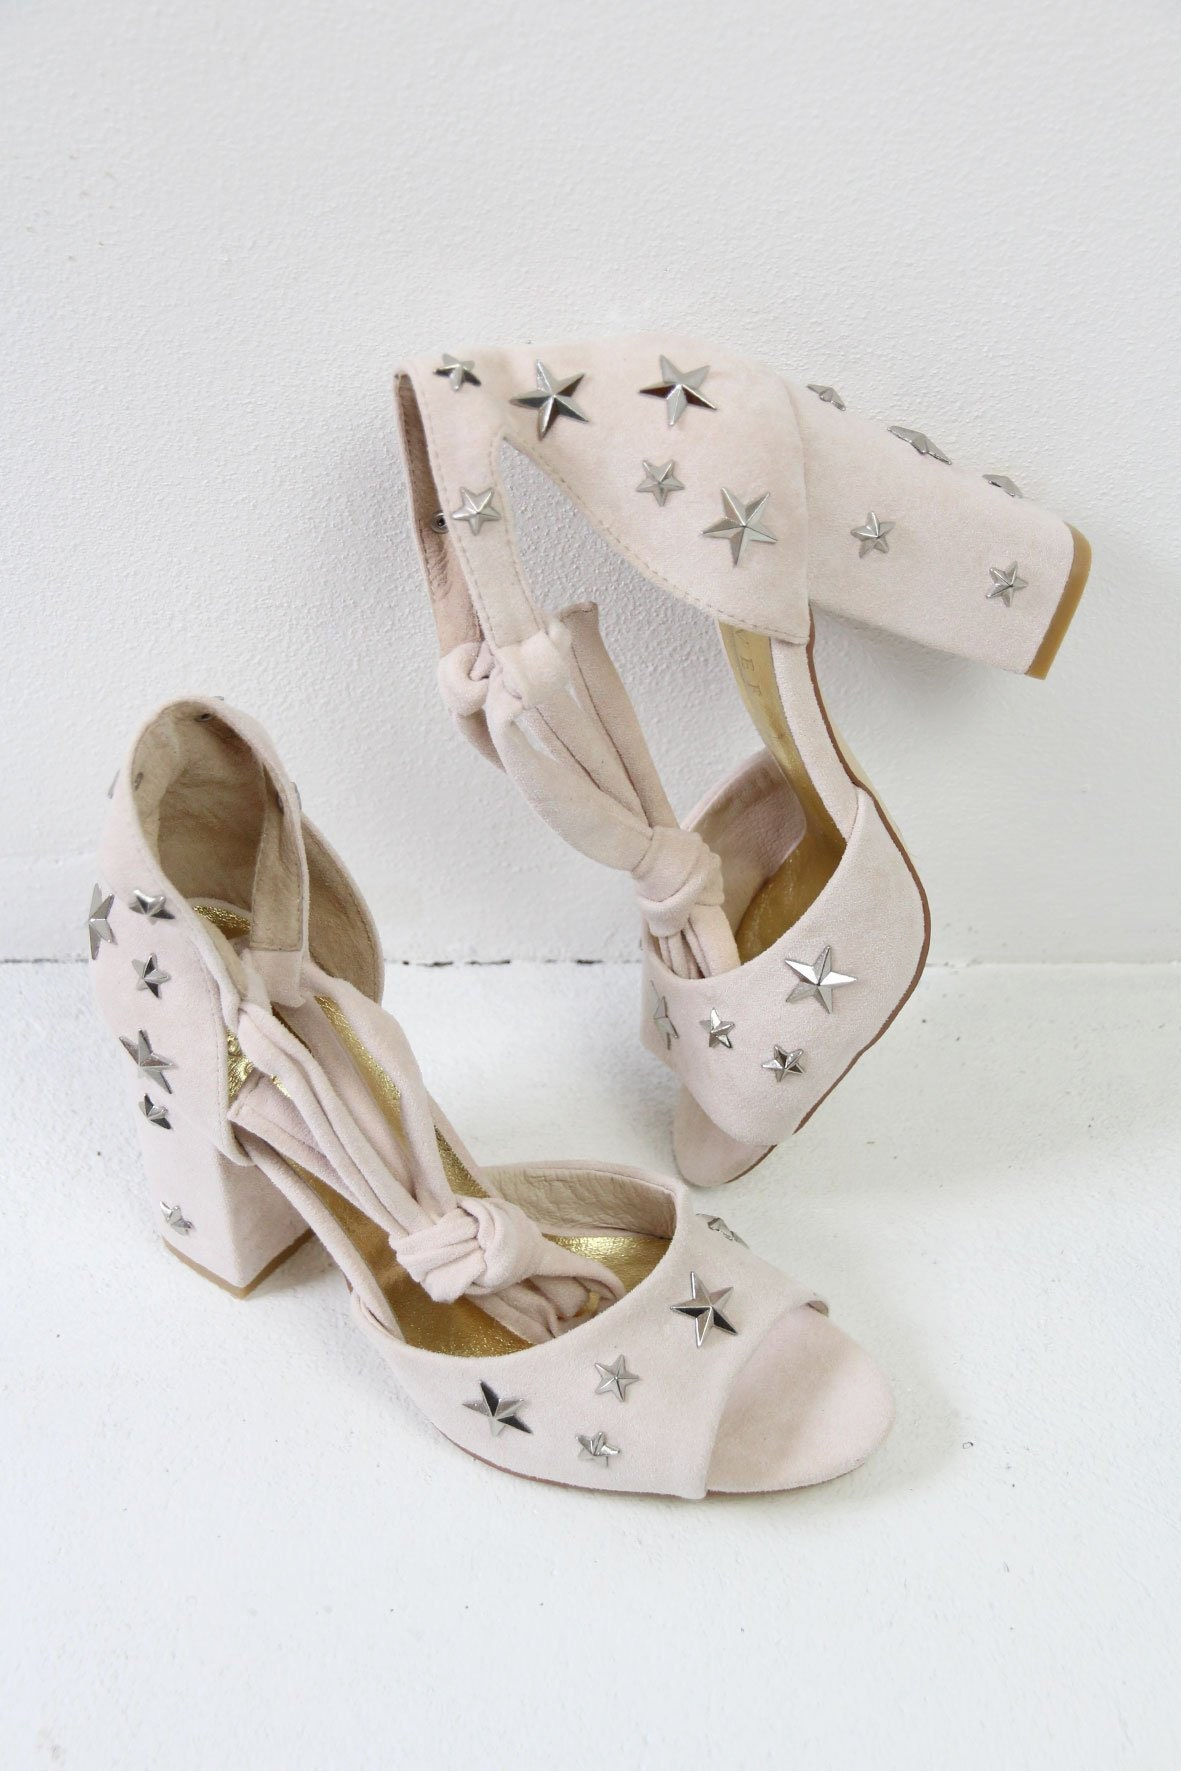 Star studded Star Sandals, Nude Wedding Sandals, Star studded shoes, Star heels, Star accessories, Unique shoes, Thick heeled shoes, wedding shoes. Stars 0c05a0